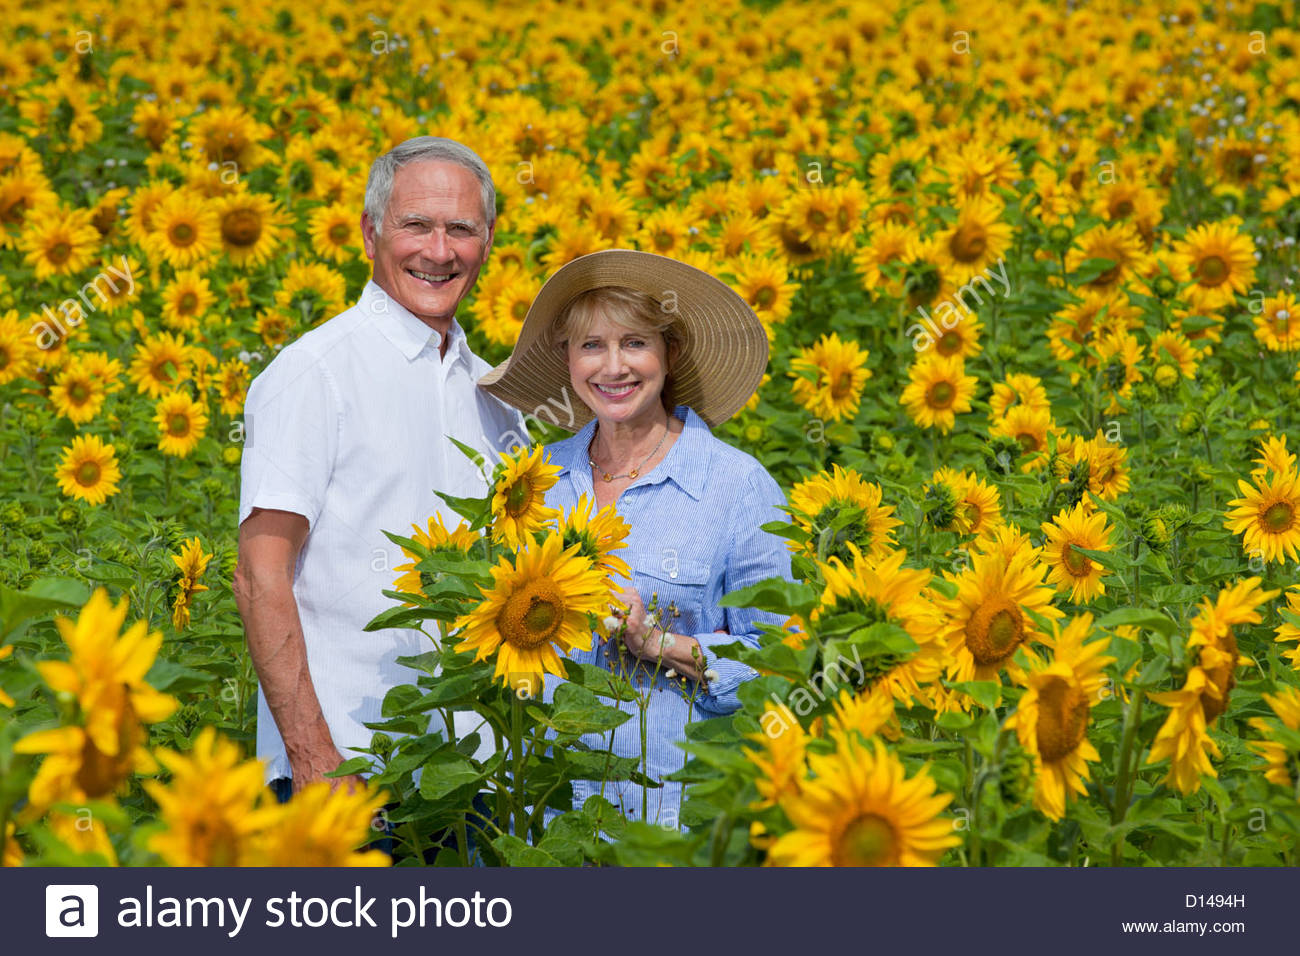 Portrait of smiling couple among sunflowers in sunny meadow - Stock Image